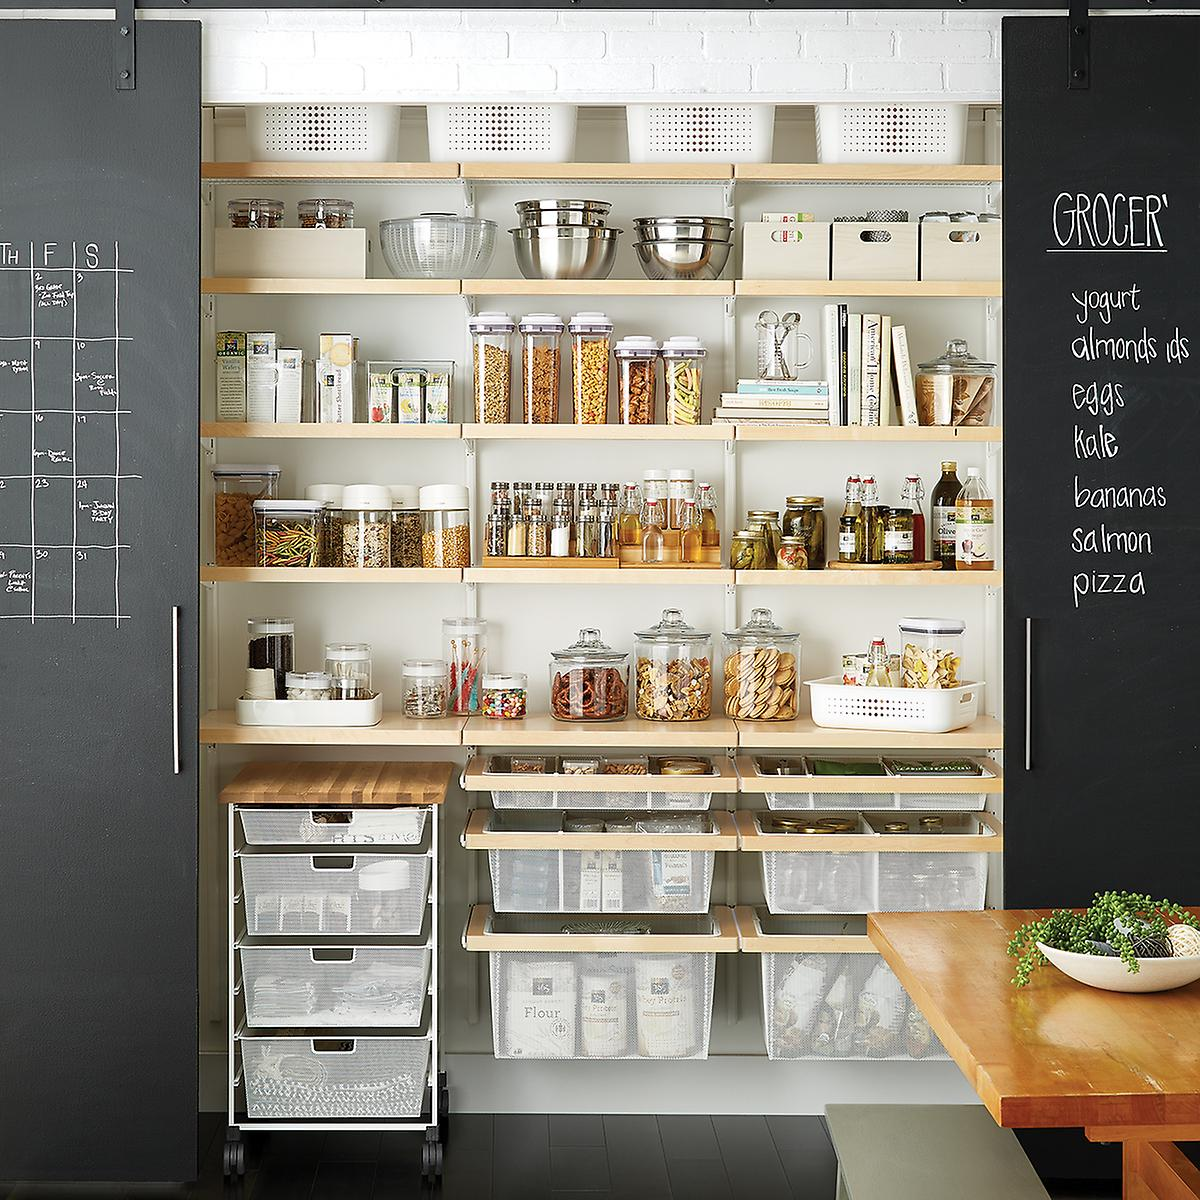 Kitchen Store Design: How To Organize Your Pantry The Instagram Way